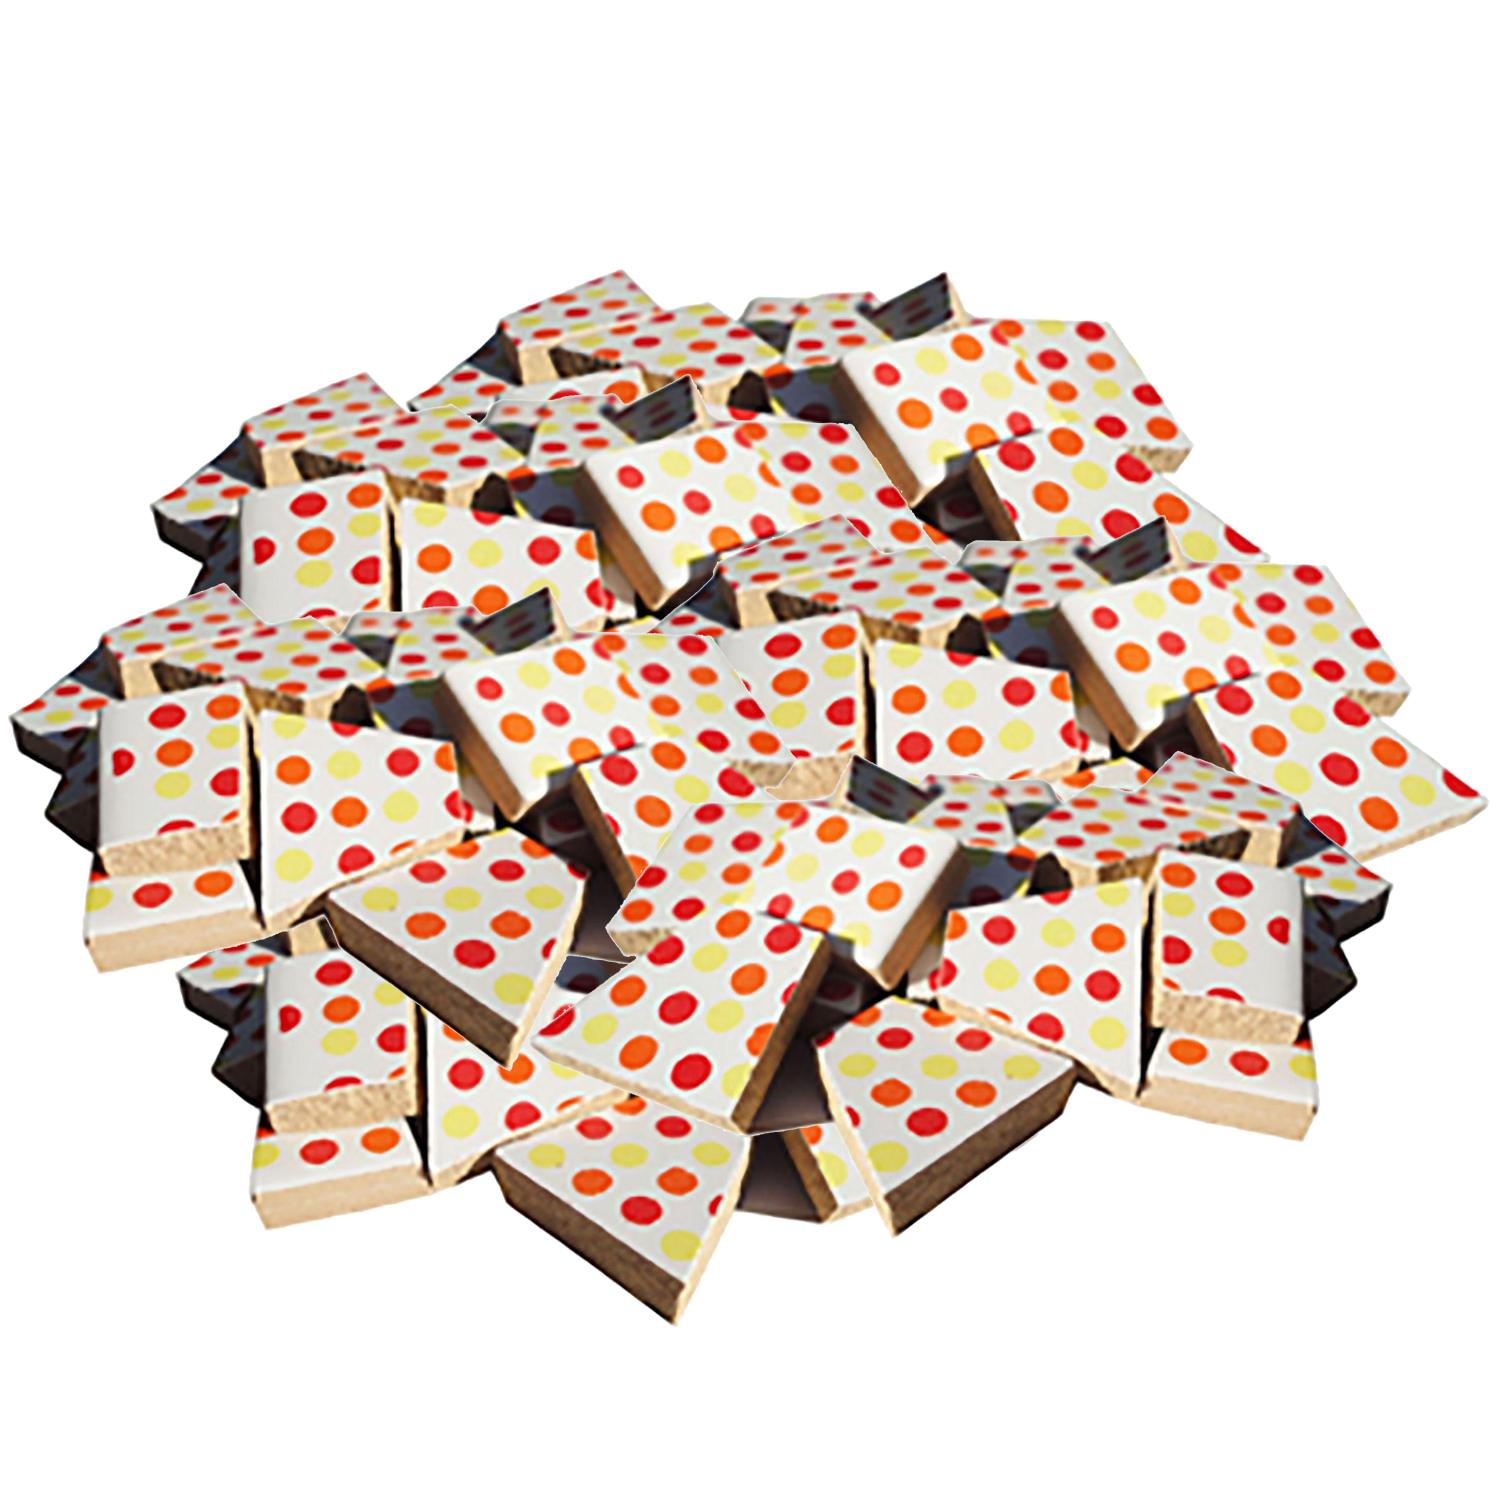 Bulk Red/Yellow Dots Ceramic Tile - 4 Lb